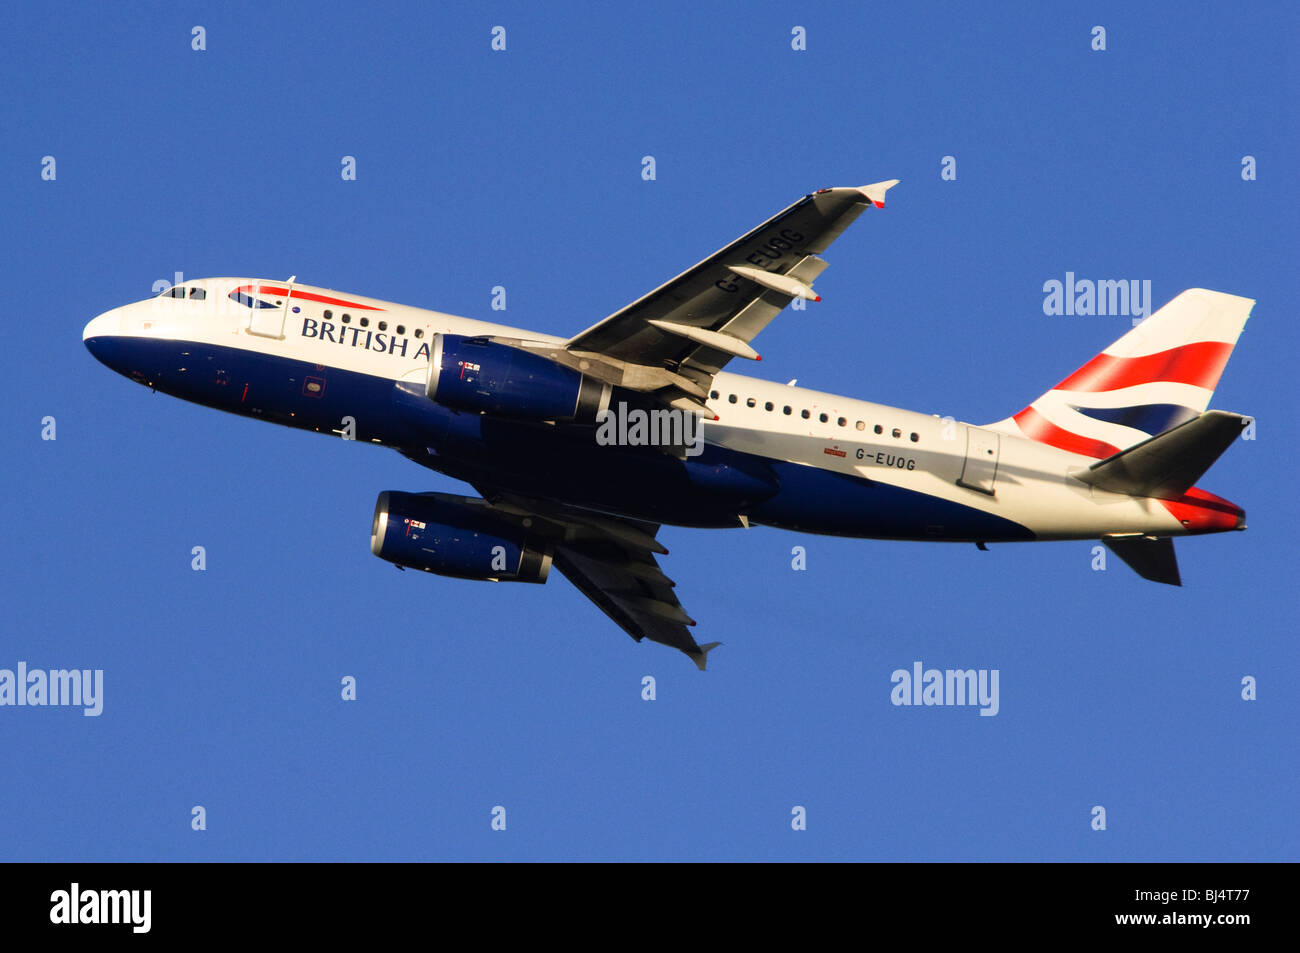 Airbus A319 operated by British Airways climbing out from take off at London Heathrow Airport - Stock Image